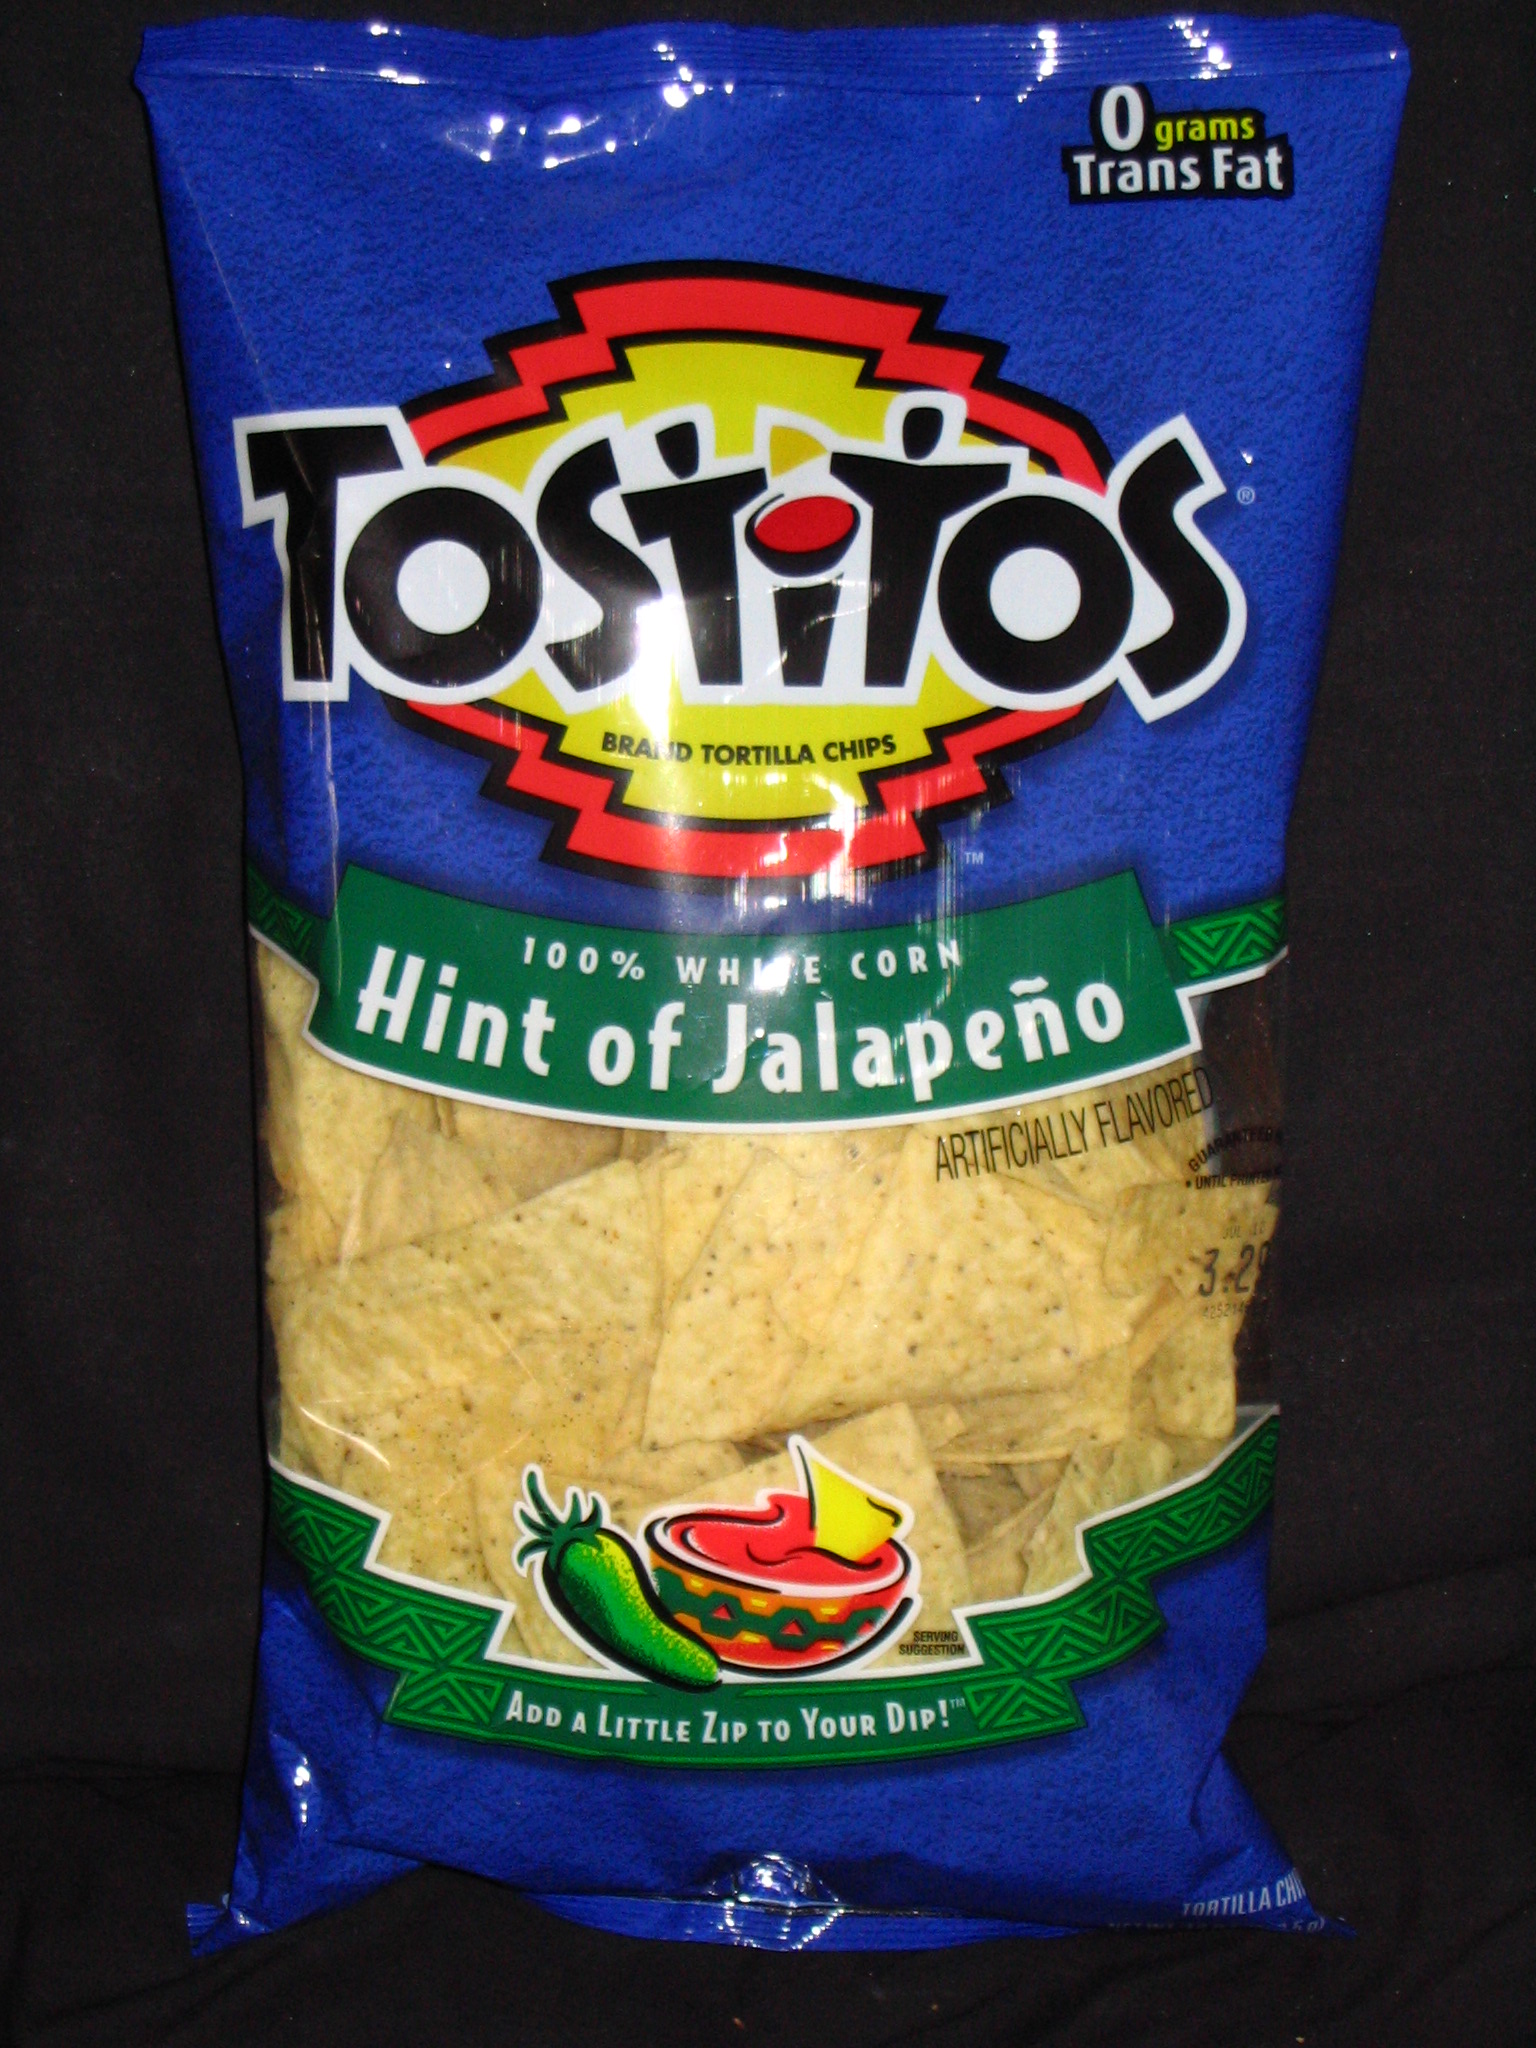 https://chipreview.files.wordpress.com/2014/06/tostitos-hint-of-jalapeno.jpg